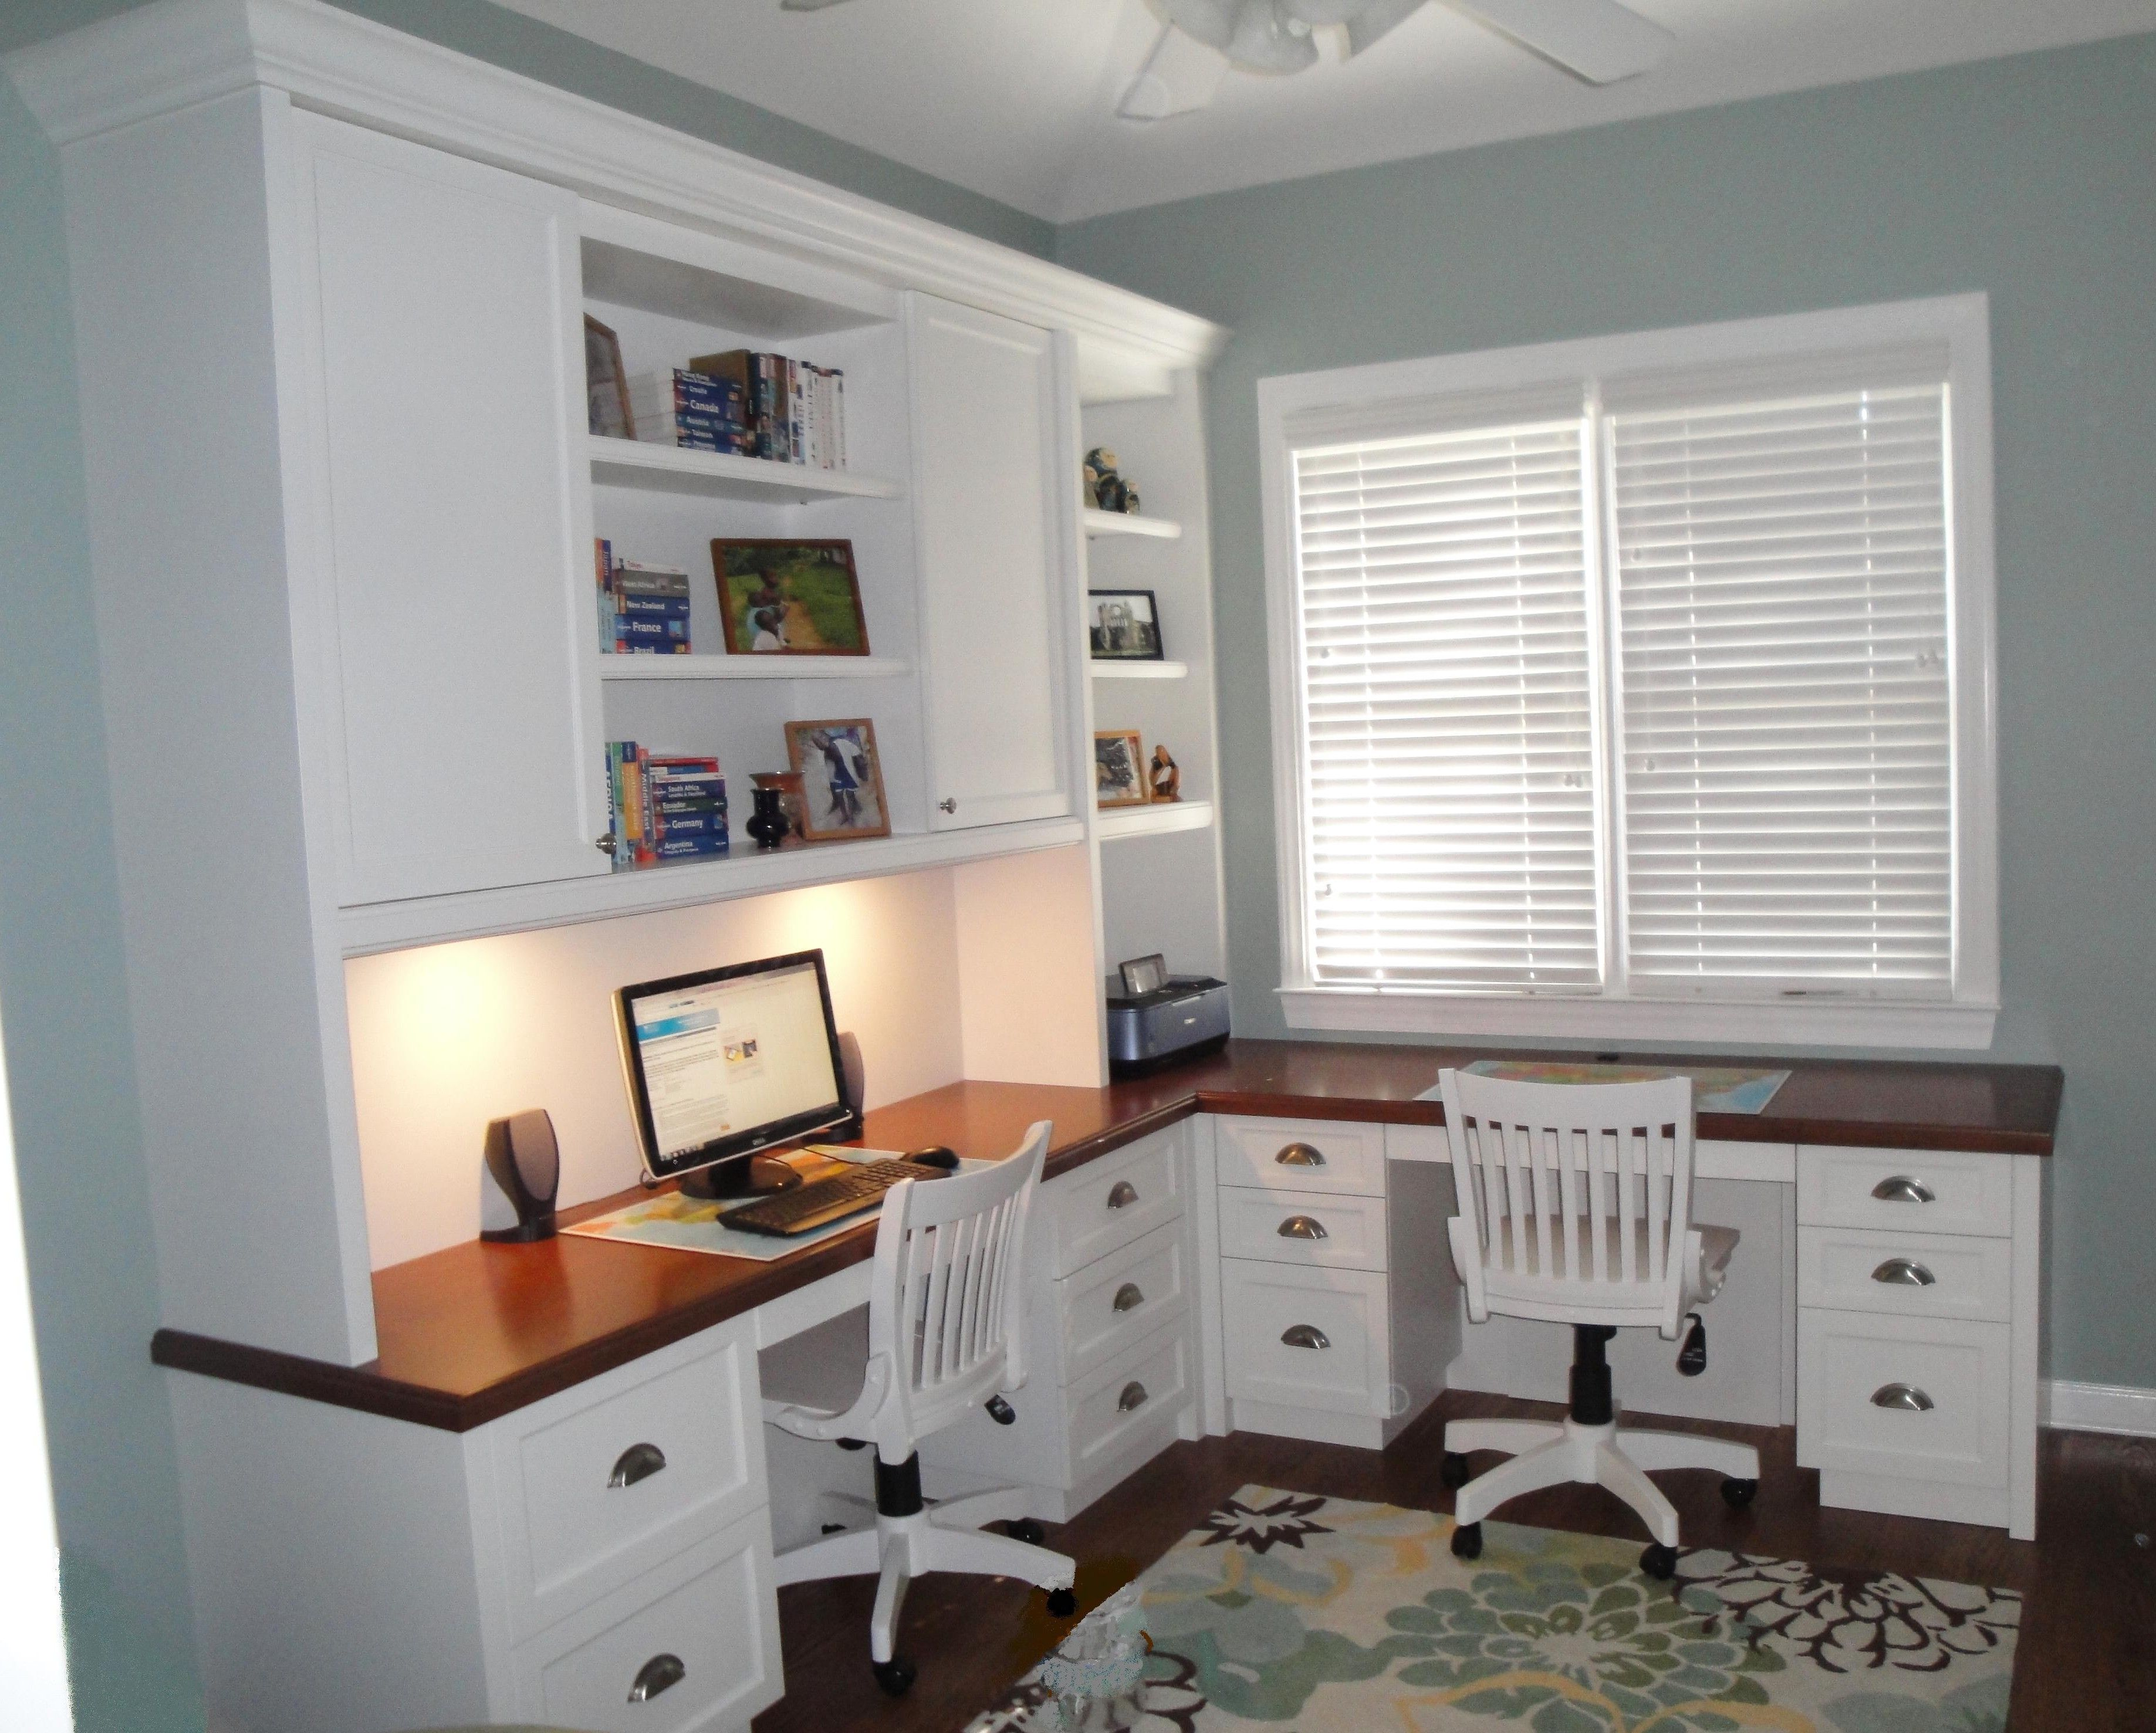 Custom Built Home Office Furniture Shelving Cabinetry In Charlotte Nc Office Built Ins Home Study Design Corner Desk Office